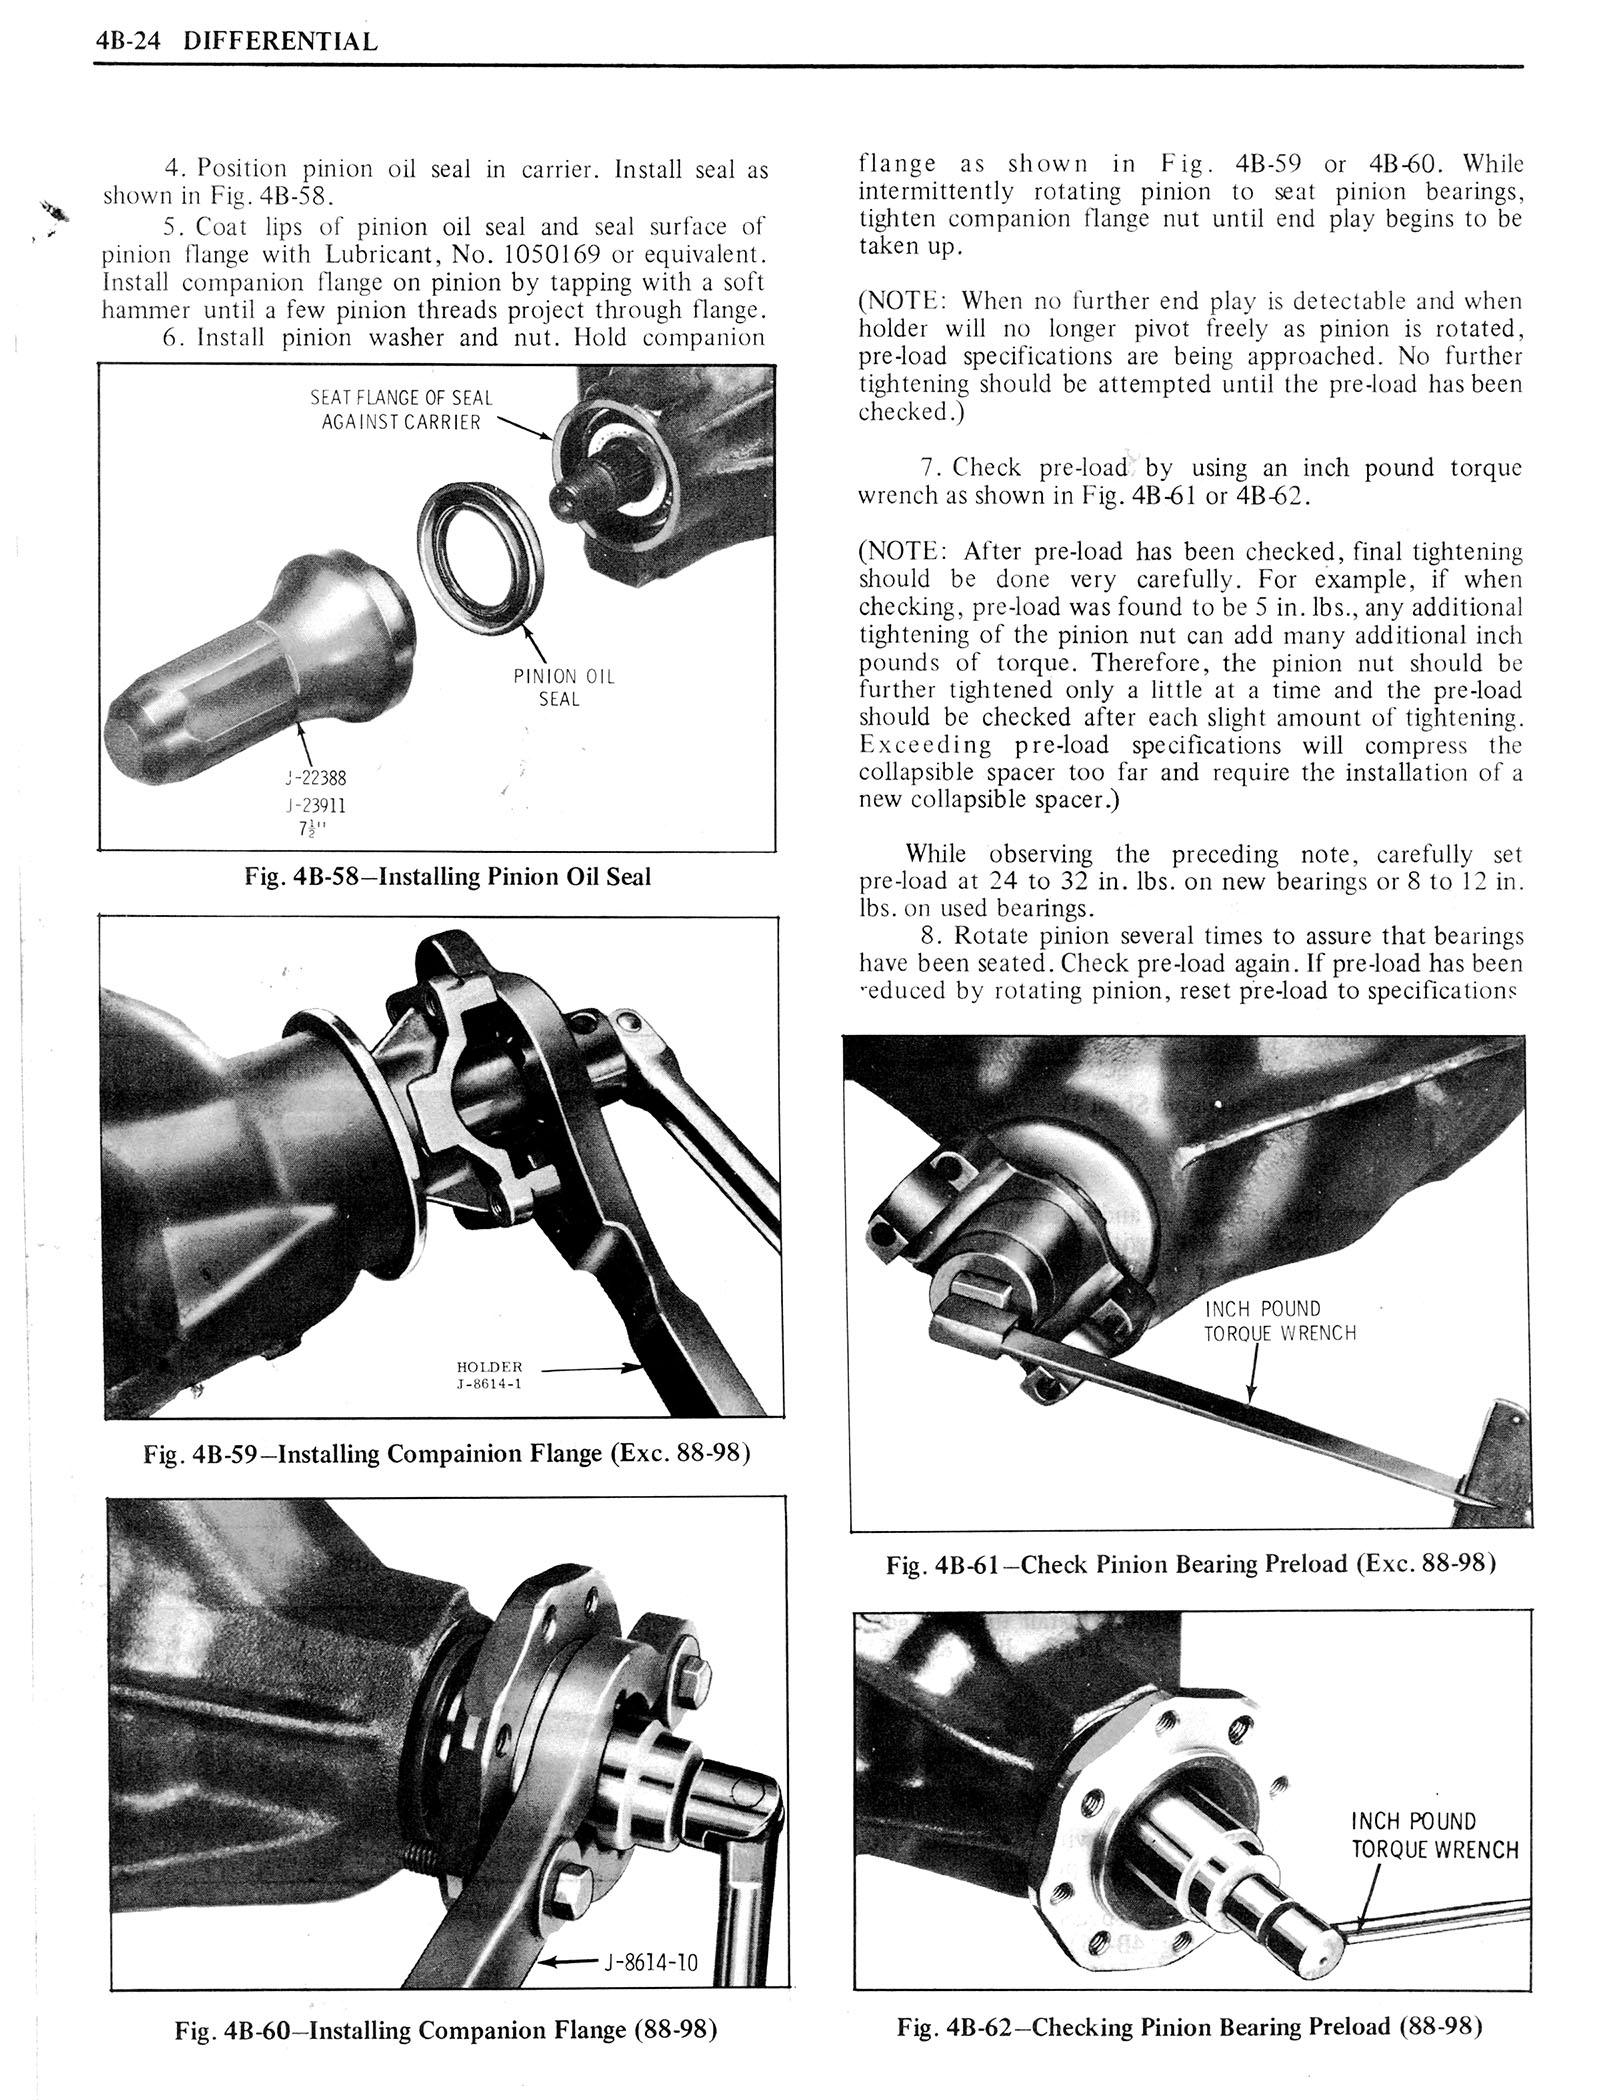 1976 Oldsmobile Service Manual page 310 of 1390